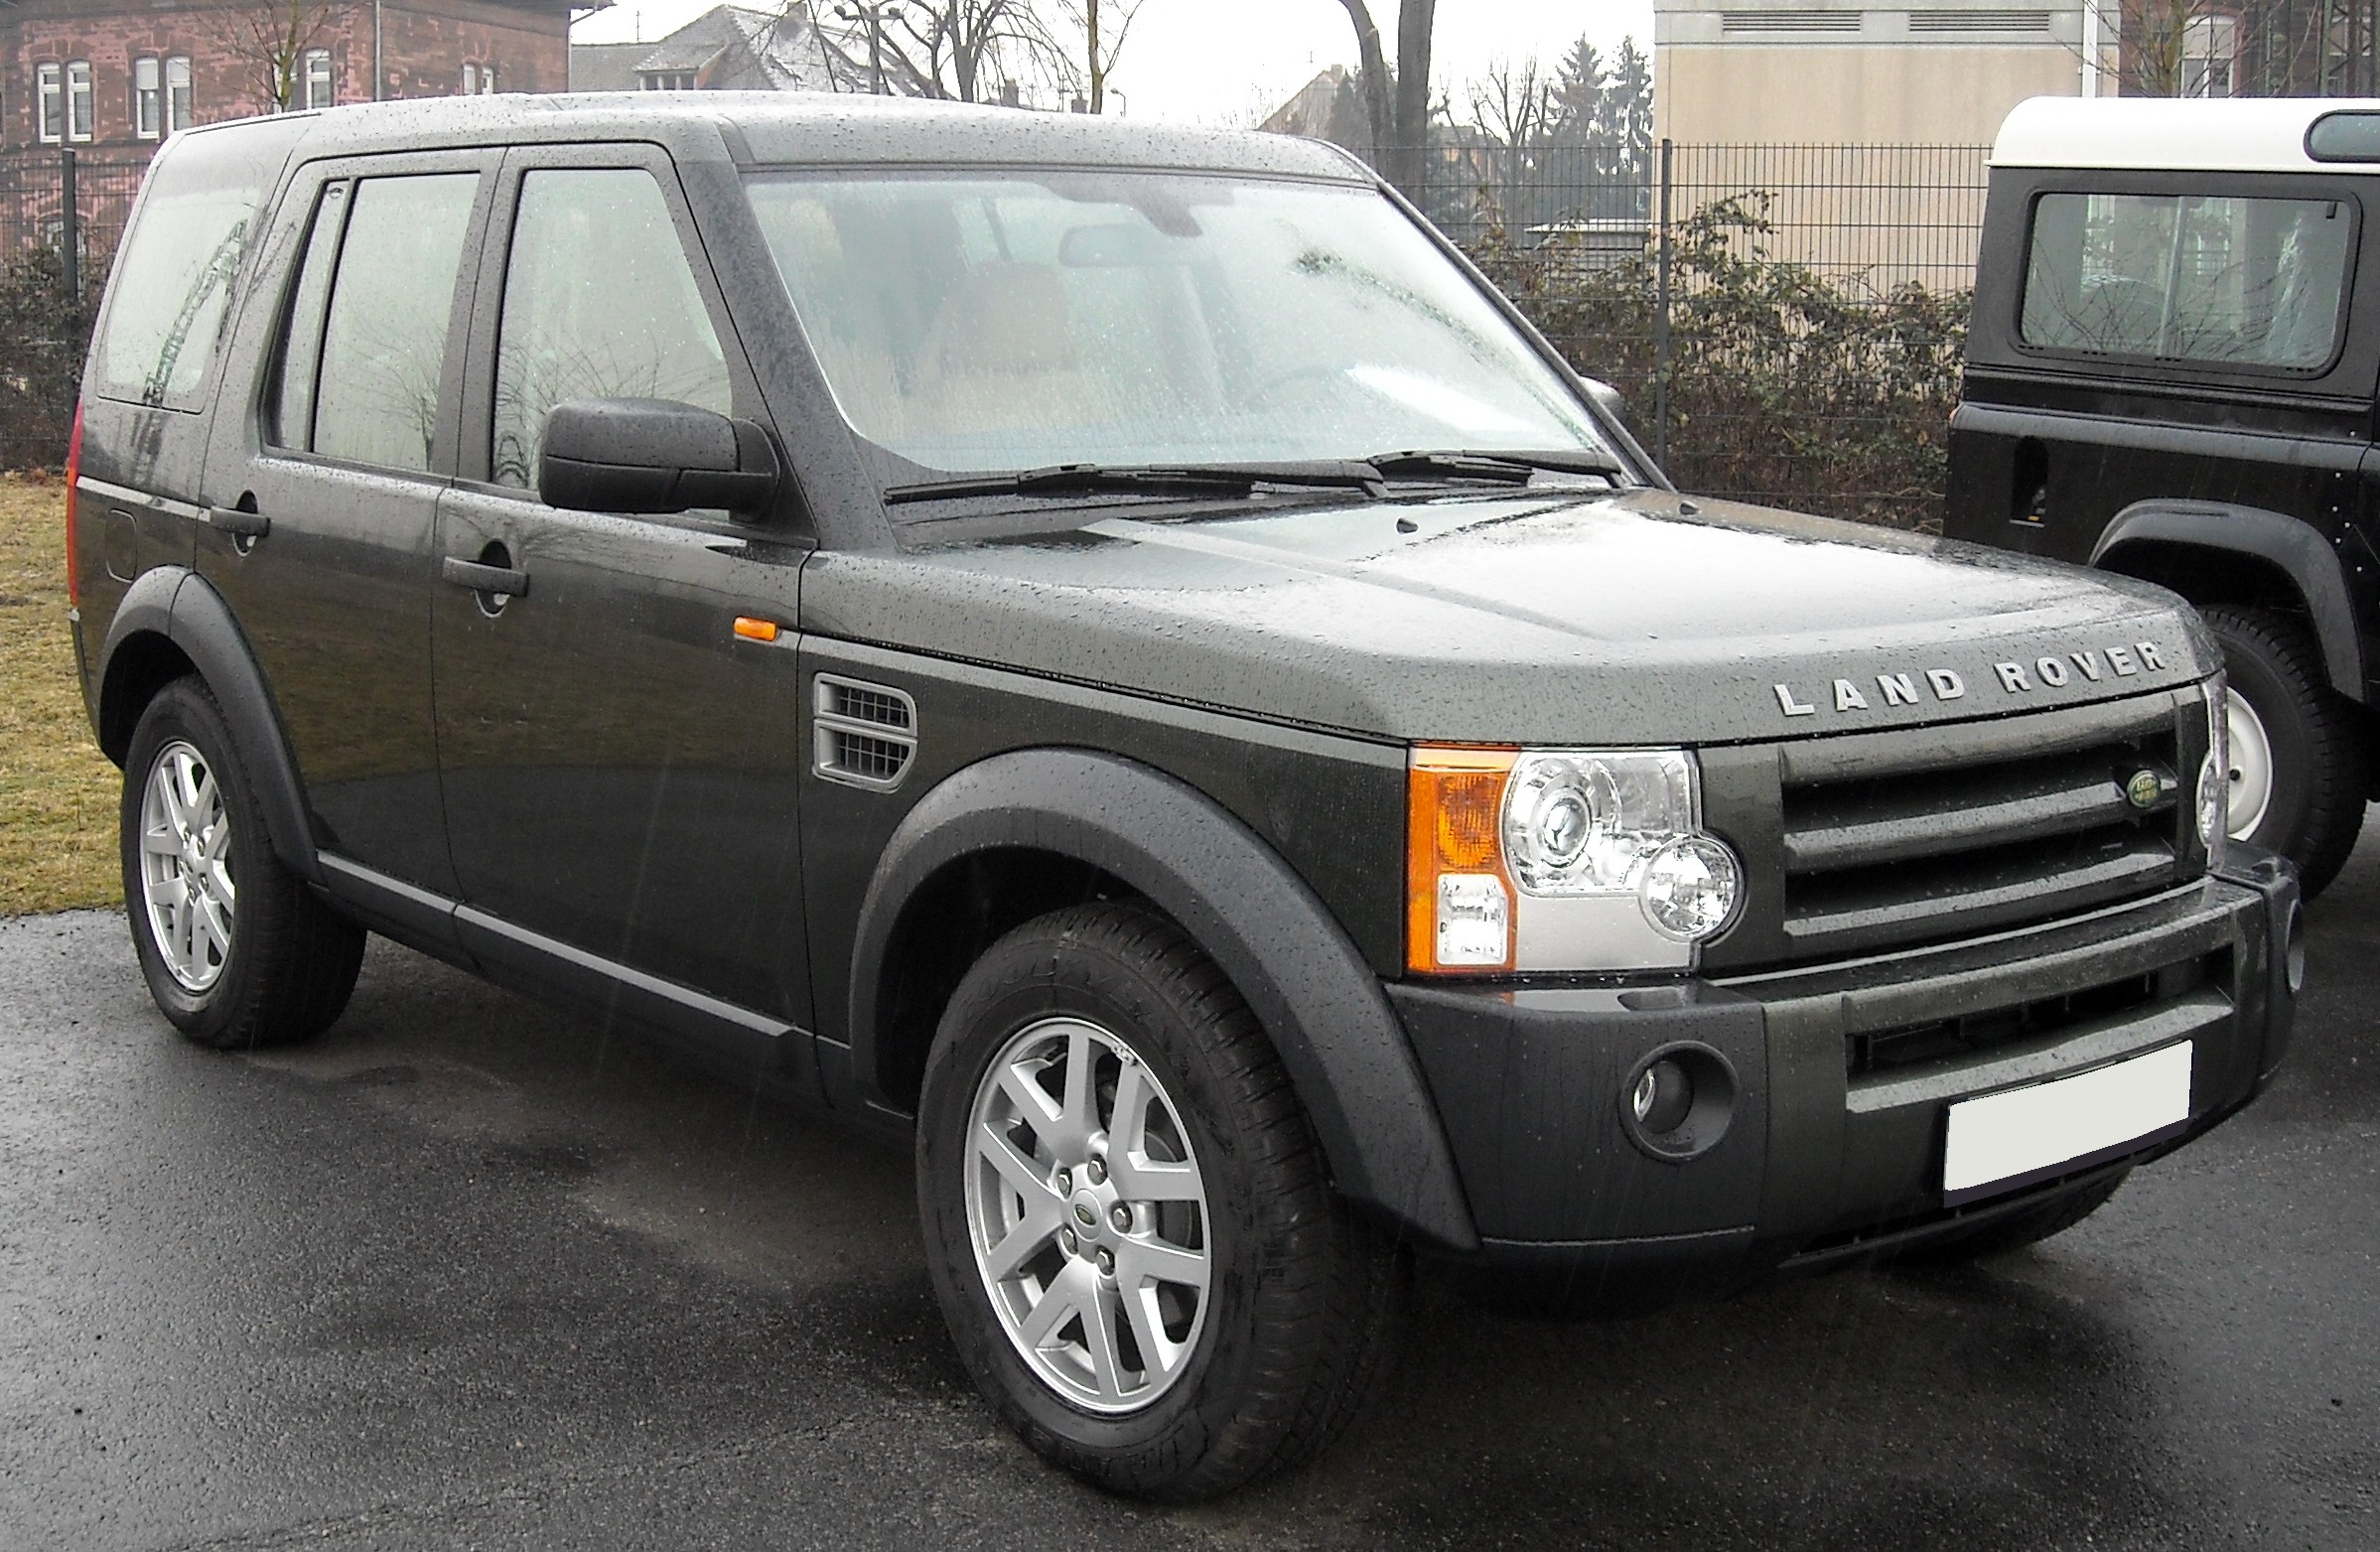 land rover discovery iii pictures information  specs auto databasecom